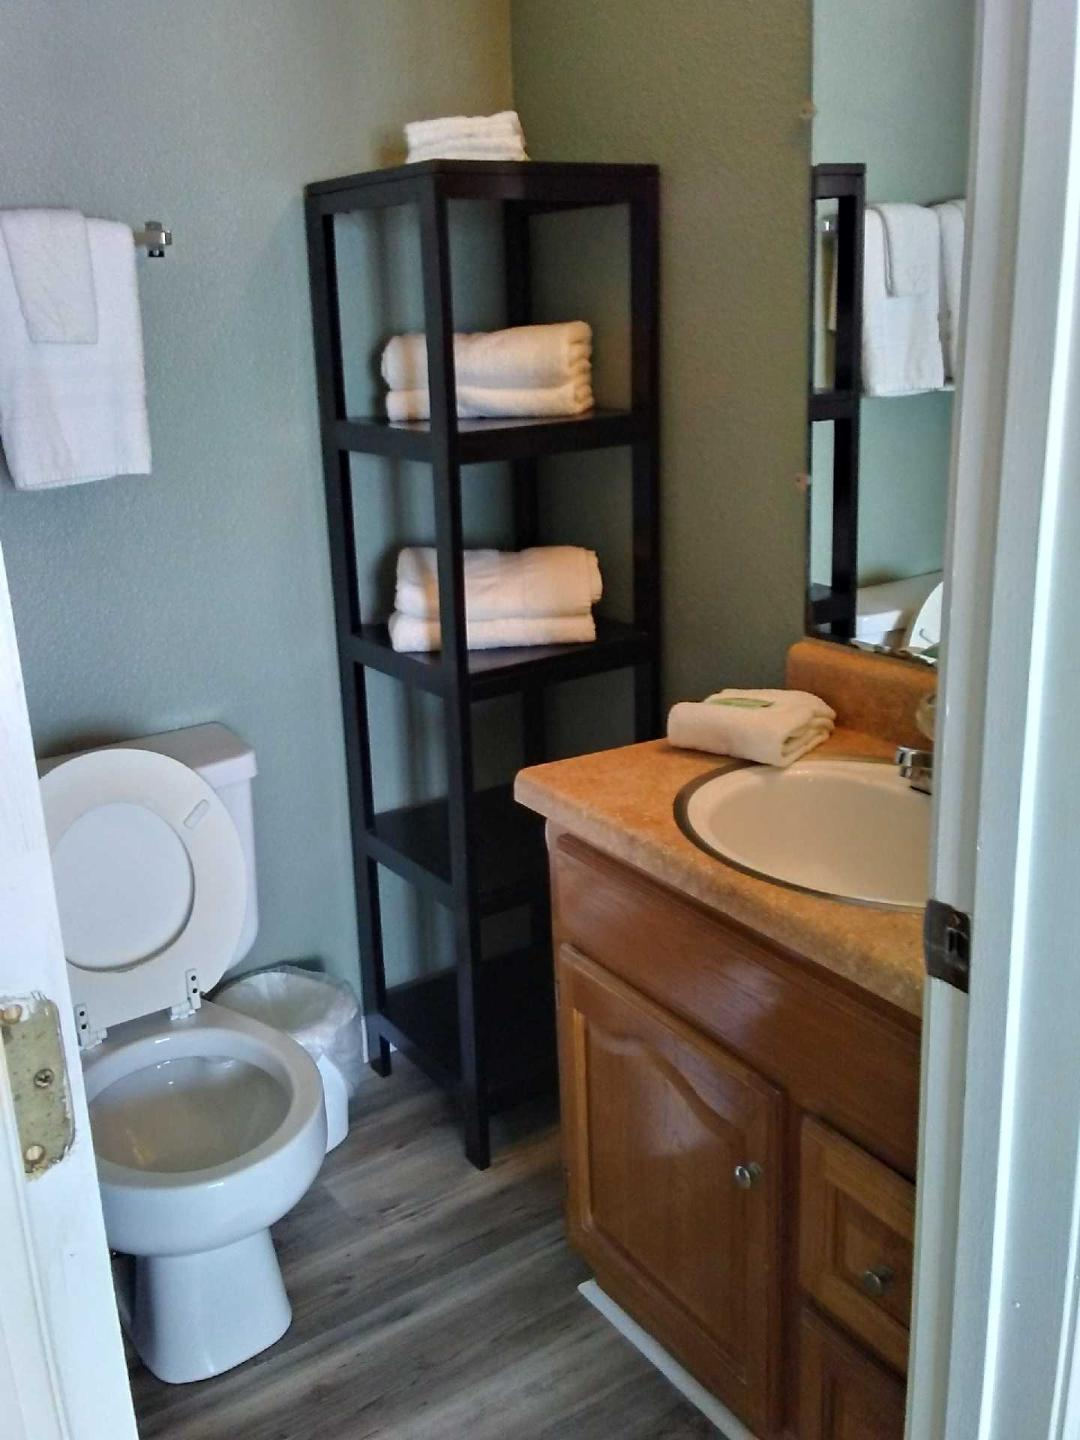 The bathroom with shower/tub combo and shelves for storage